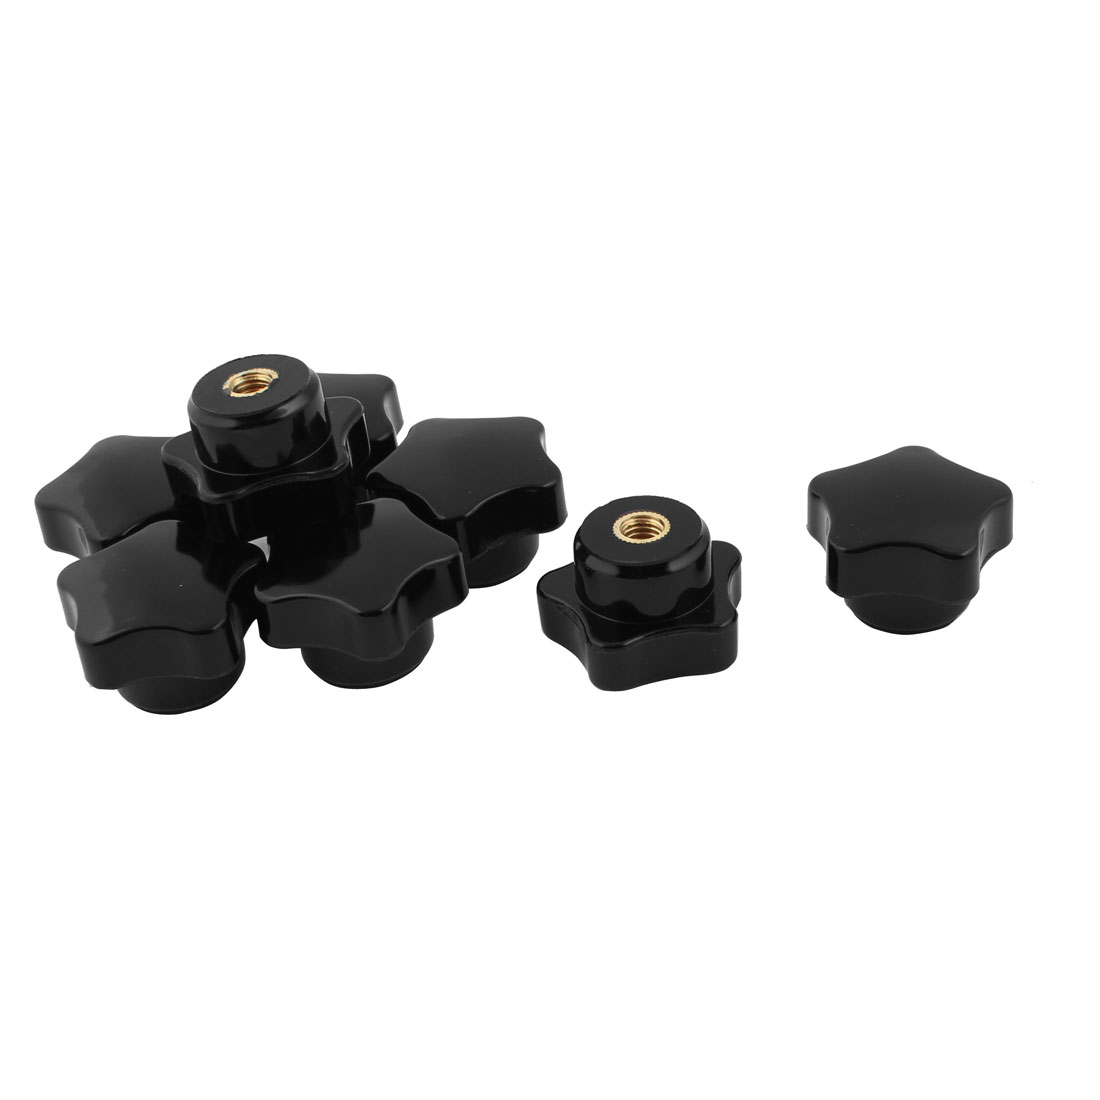 5mm Female Thread Plastic Star Head Screw Clamping Knob Handle Grip Black 8pcs